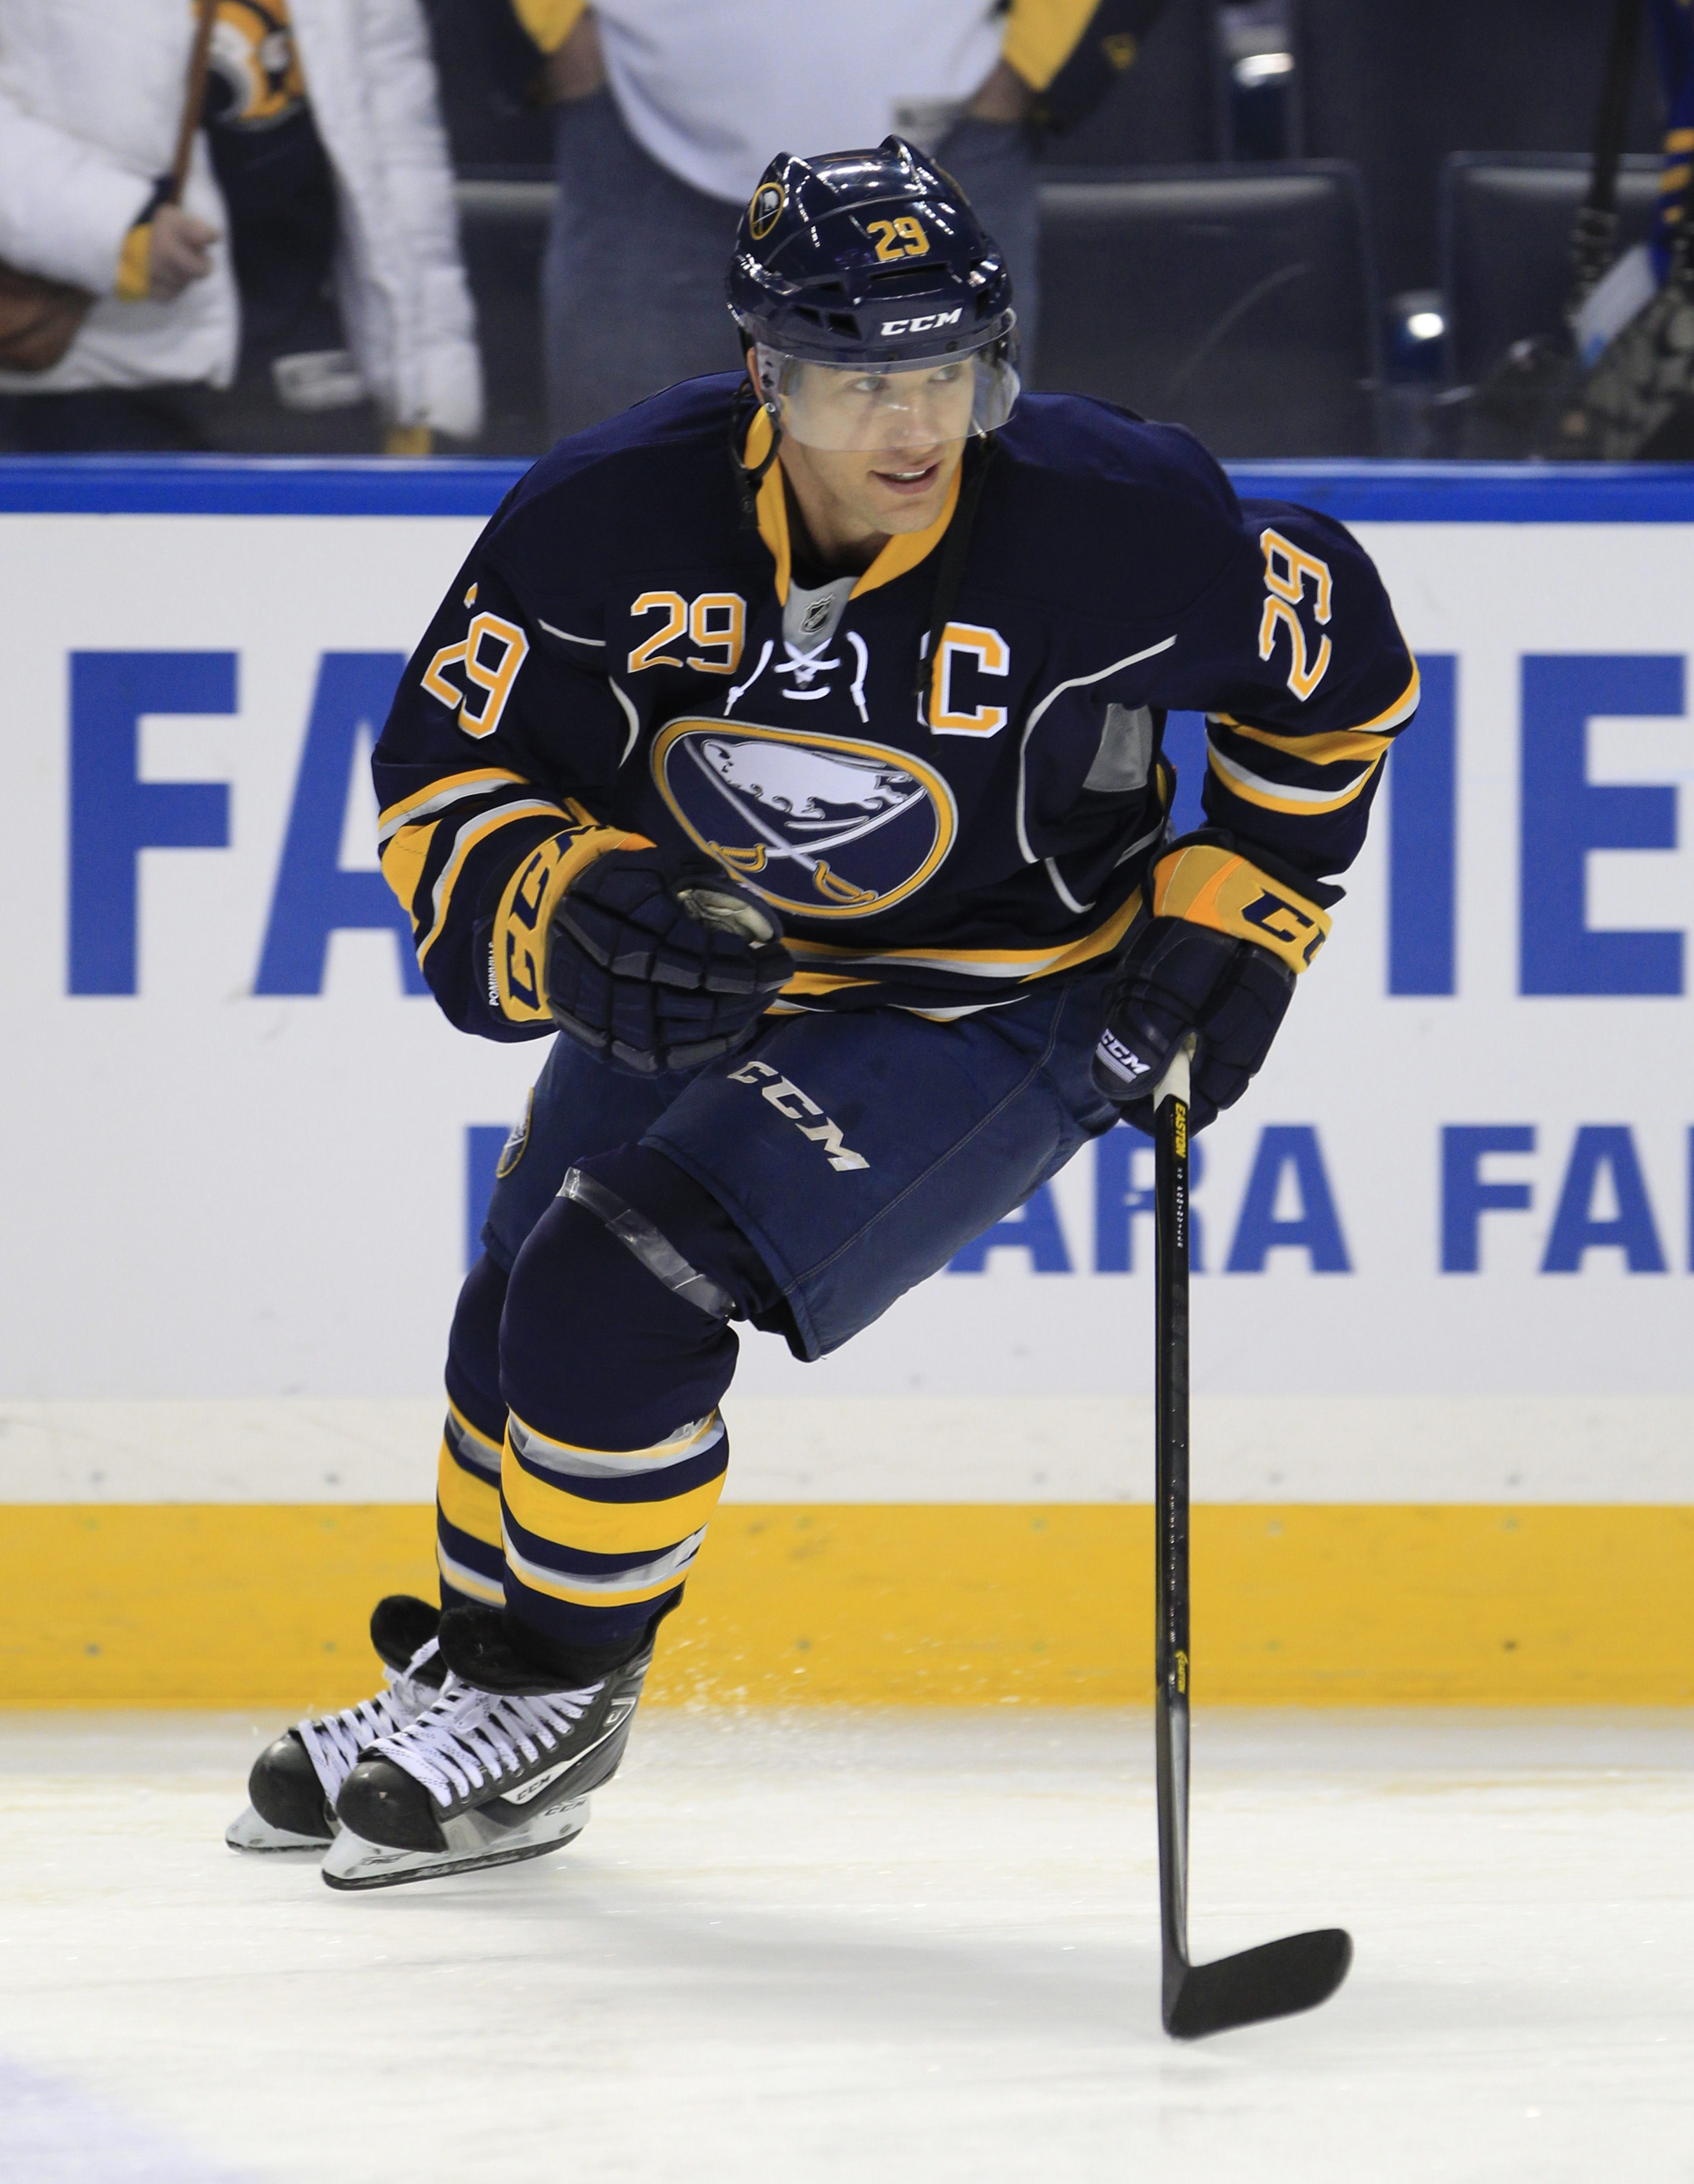 Jason Pominville told reporters in L.A. he was shocked that the Sabres traded him.